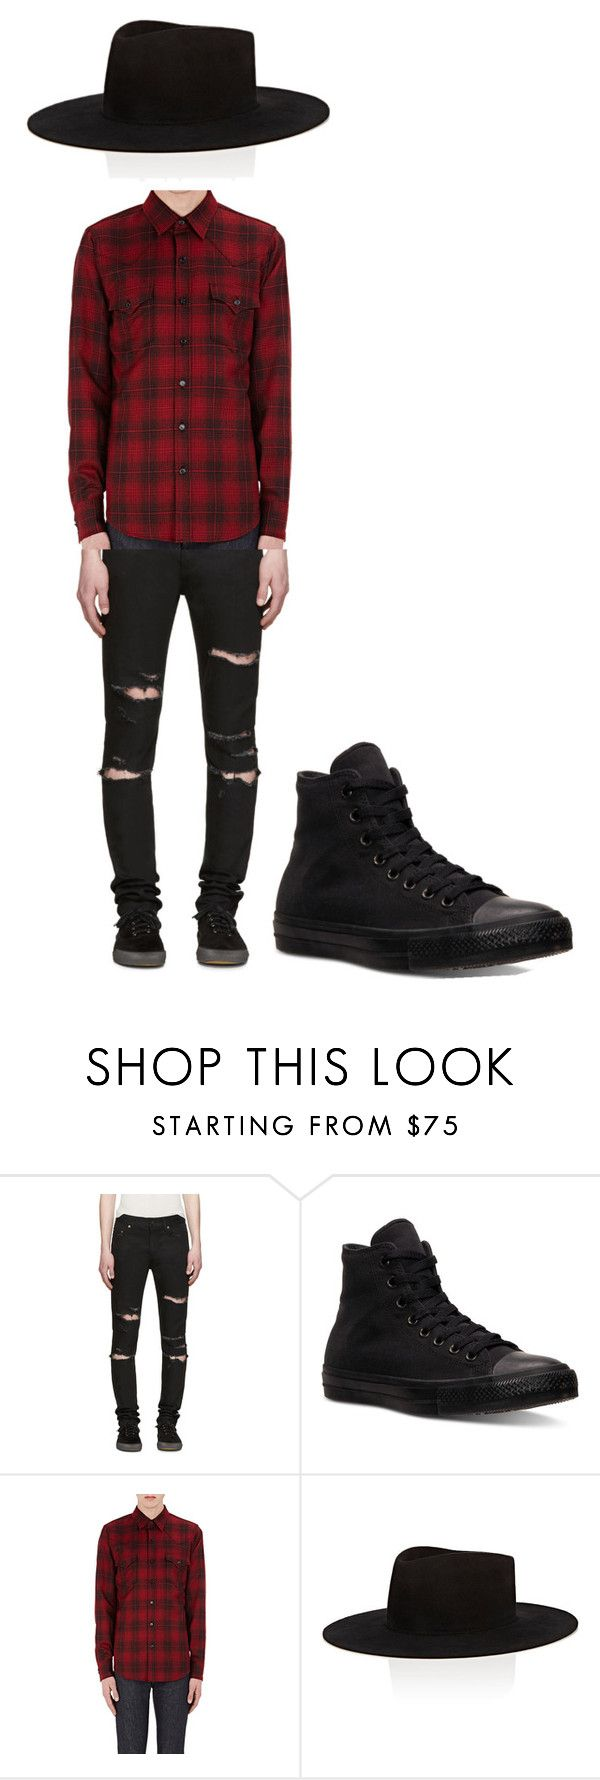 """pop punk style"" by martinsbernardo ❤ liked on Polyvore featuring Yves Saint Laurent, Converse, Off-White, men's fashion and menswear"